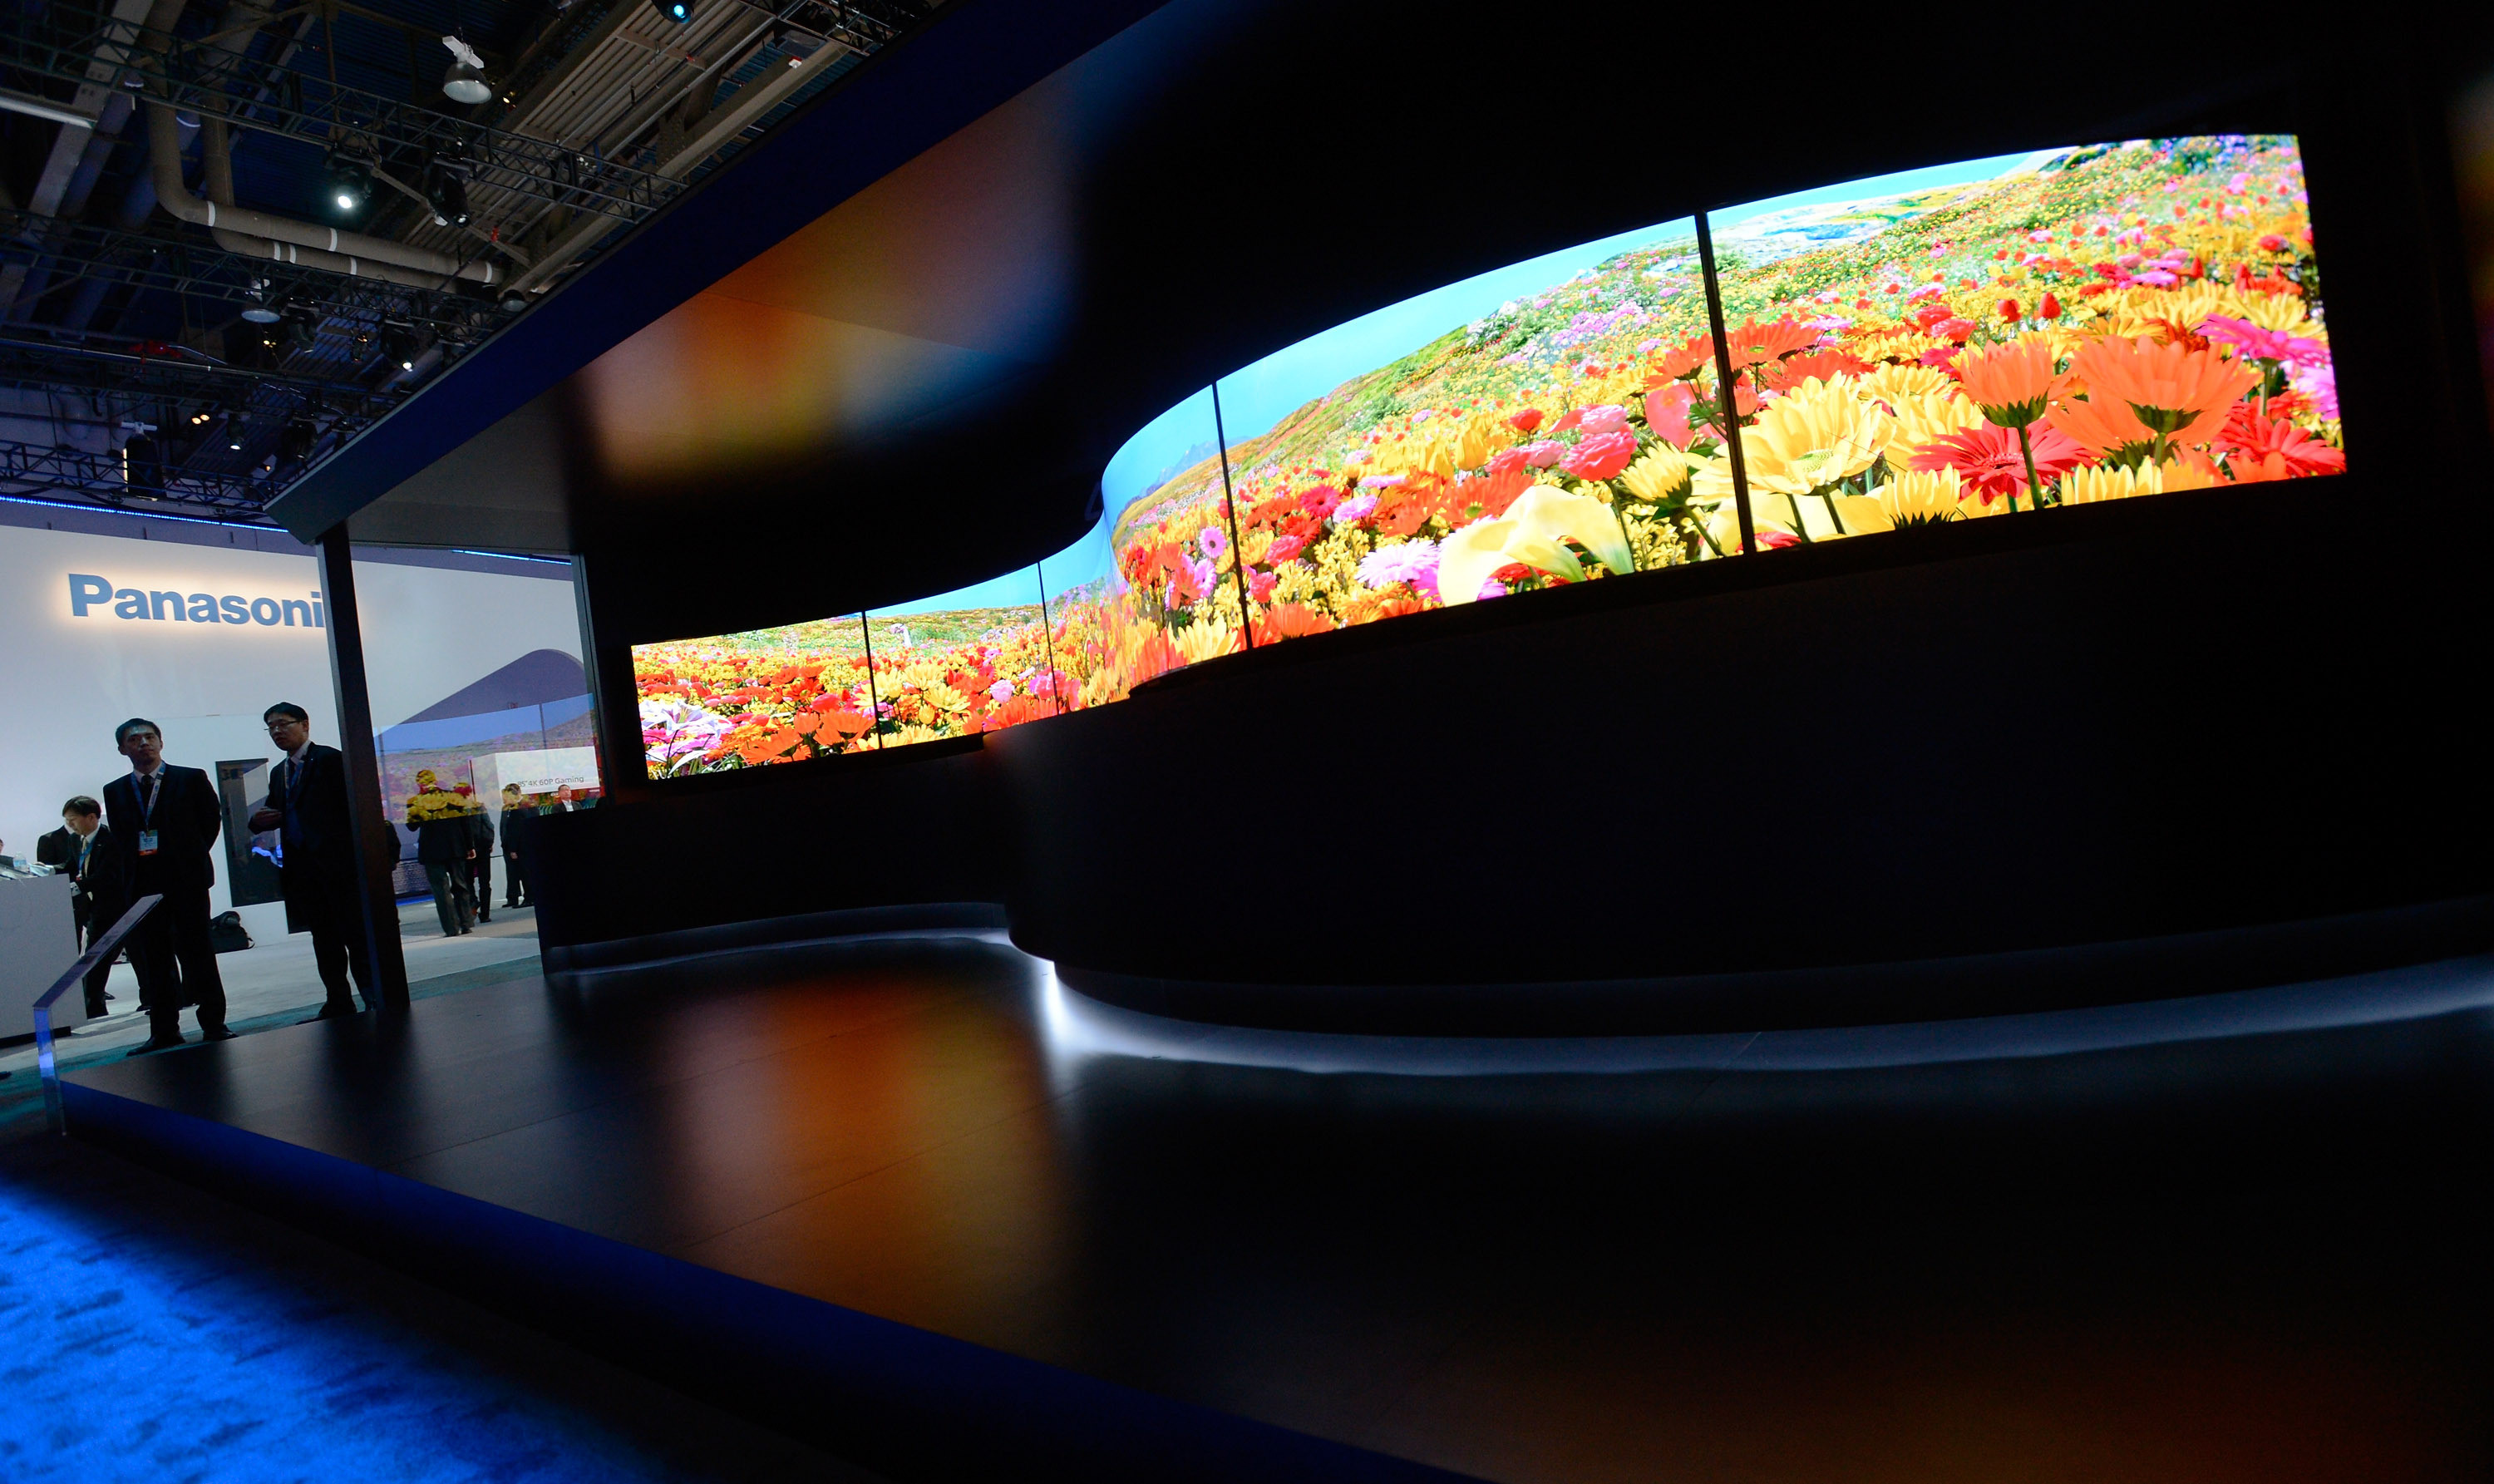 CES 2015: The Future Of TV (And Netflix) Is HDR. But No, You Can't Have It